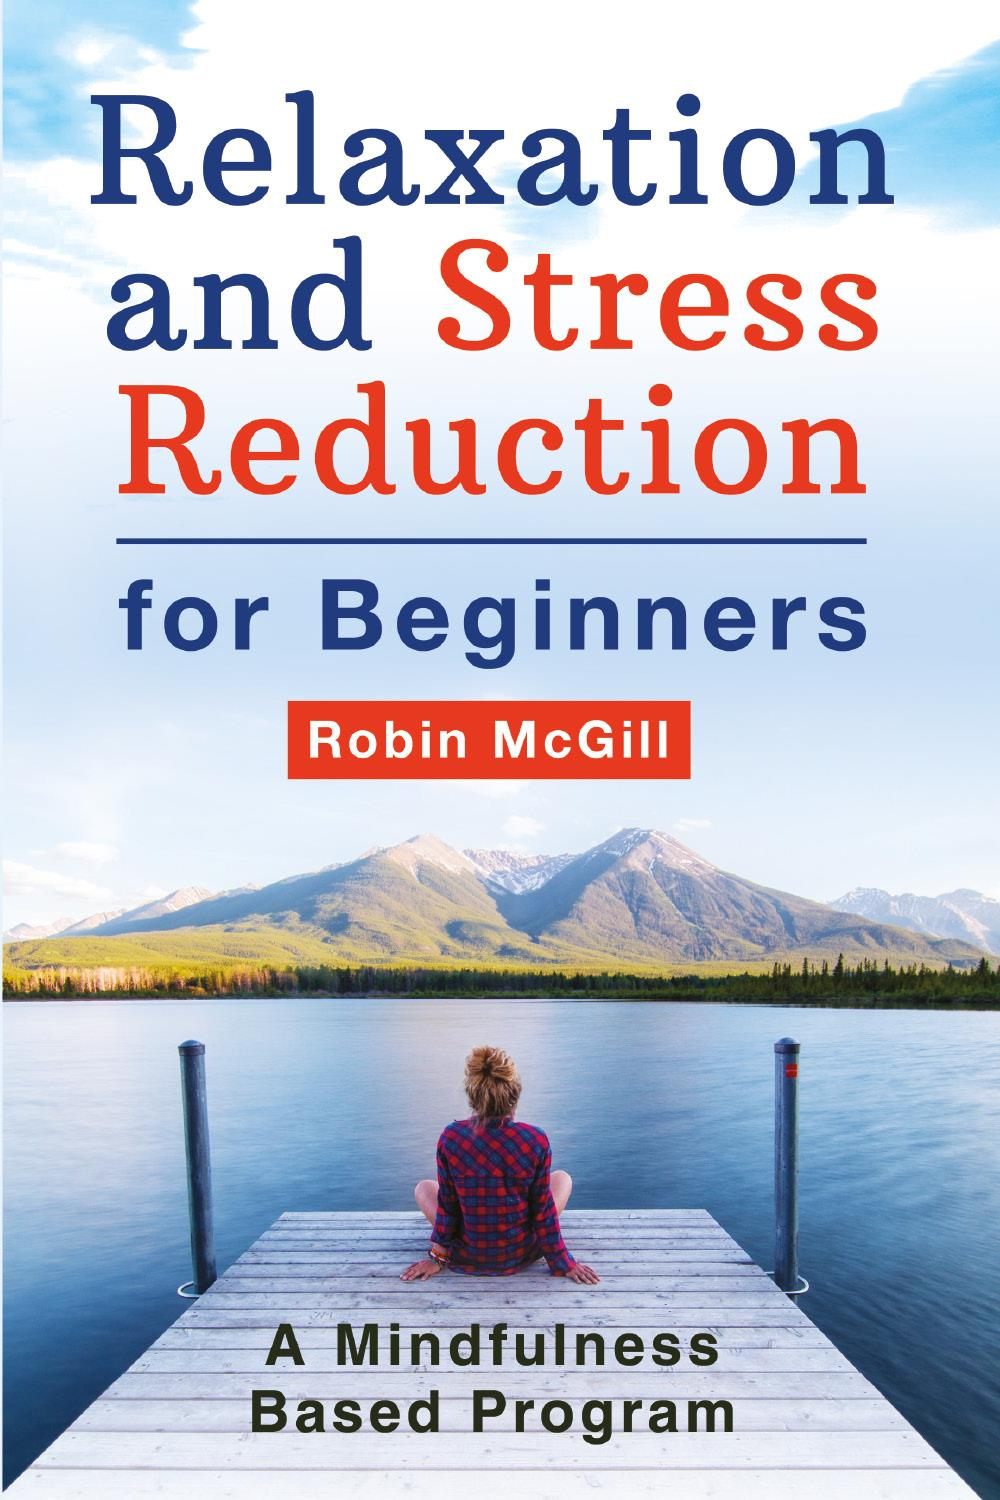 Relaxation and Stress Reduction for Beginners. A Mindfulness-Based Program